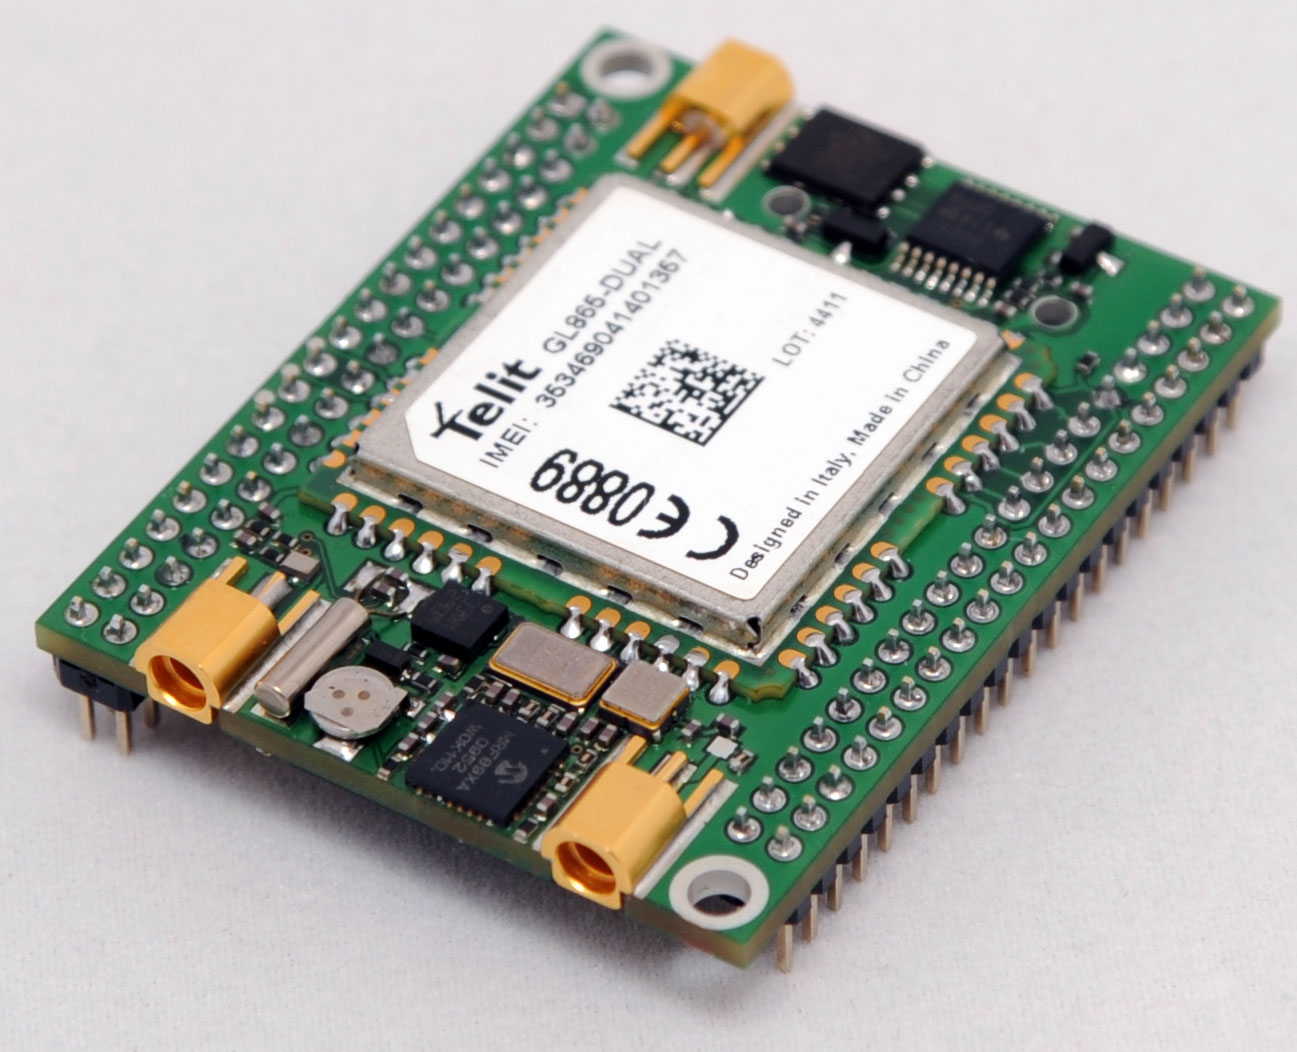 Gps4net Gps Gsm System In Package On Board Unit Platform Suitable Circuit